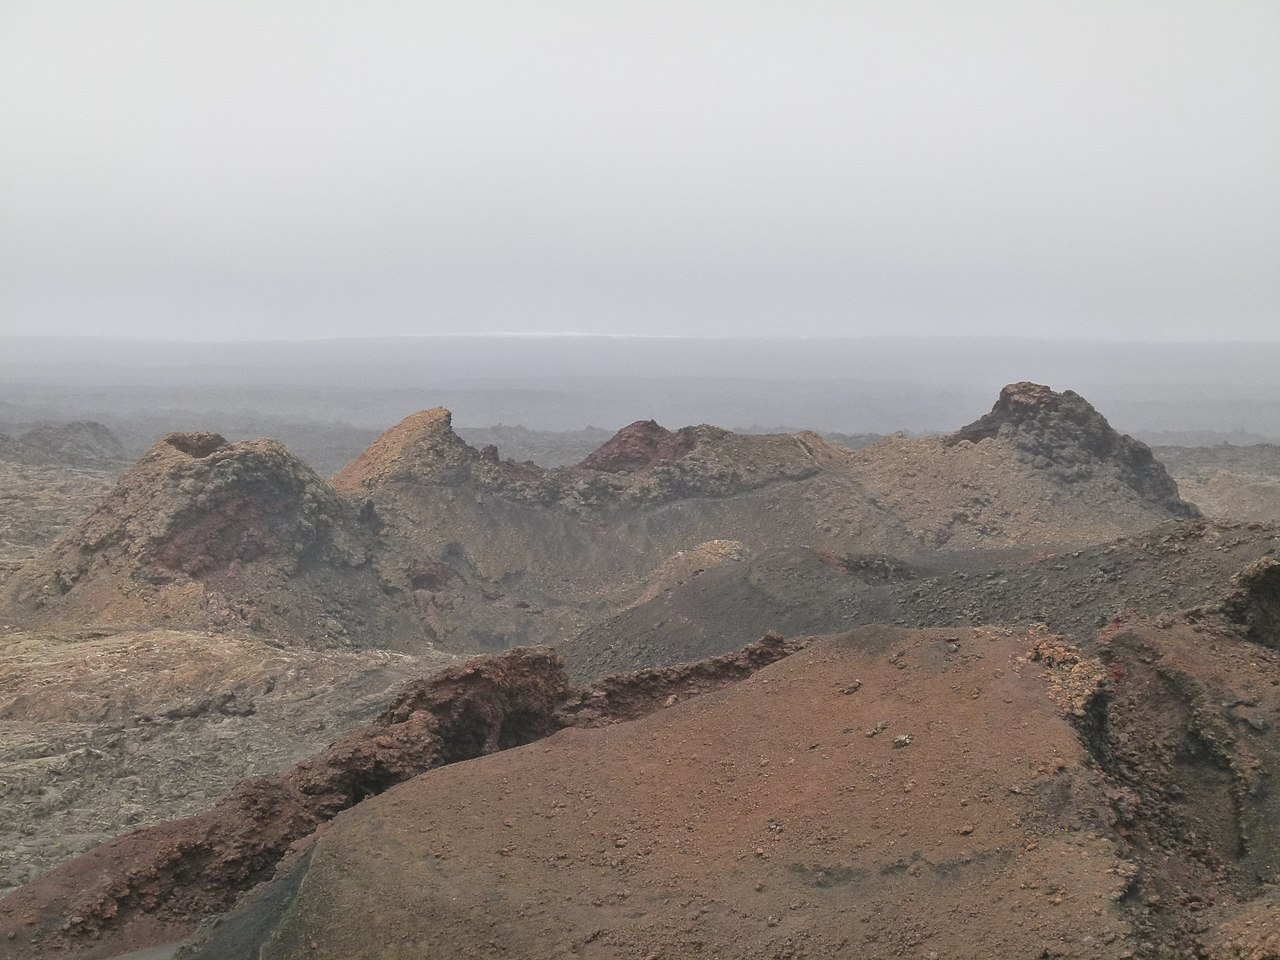 File Montanas Del Fuego Timanfaya National Park On A Foggy Rainy Day Lanzarote 05 Jpg Wikimedia Commons